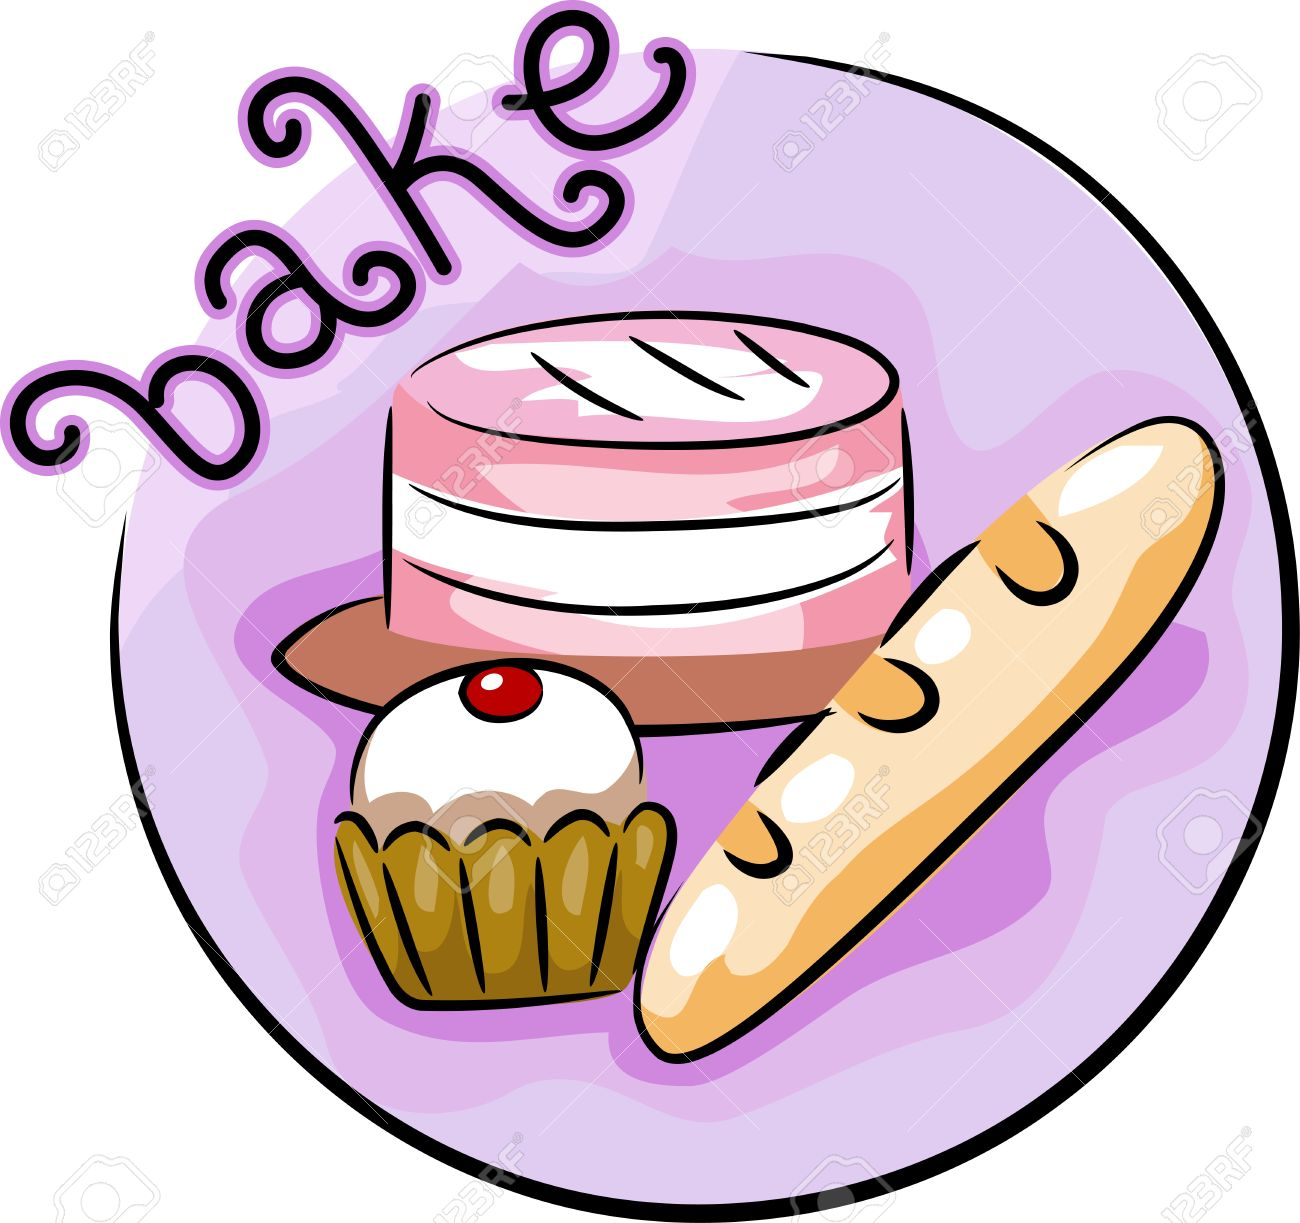 Baking clipart child baking Clip Art Free Free Panda